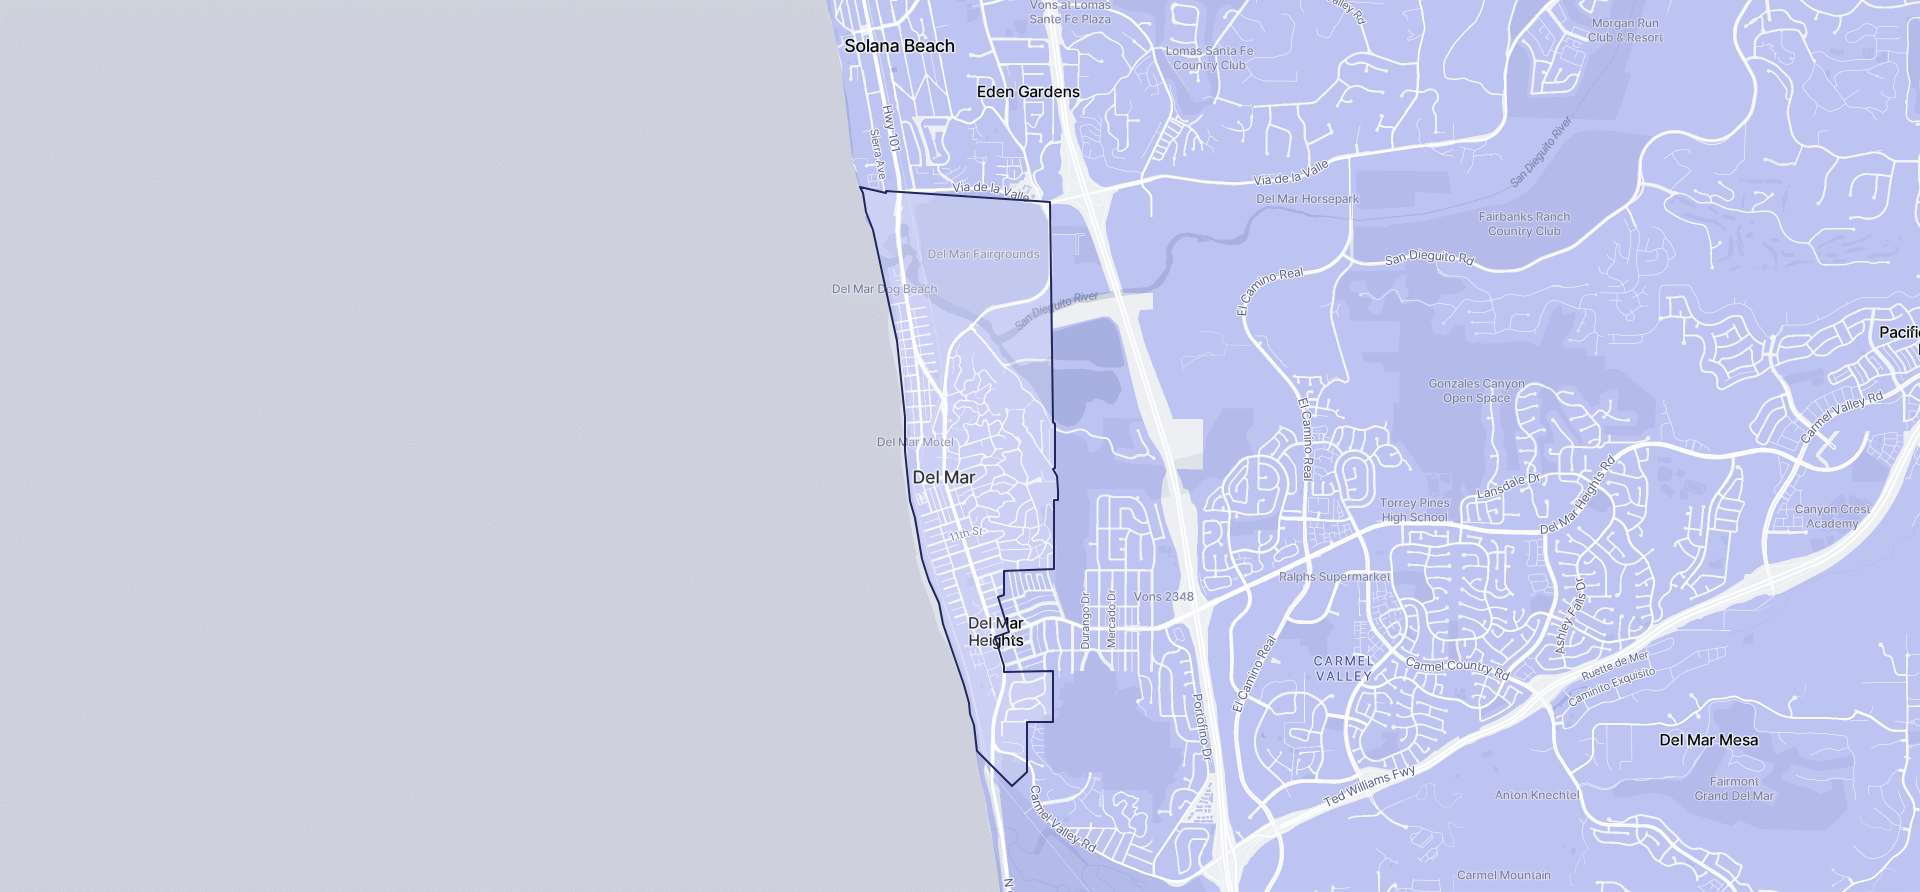 Image of Del Mar boundaries on a map.